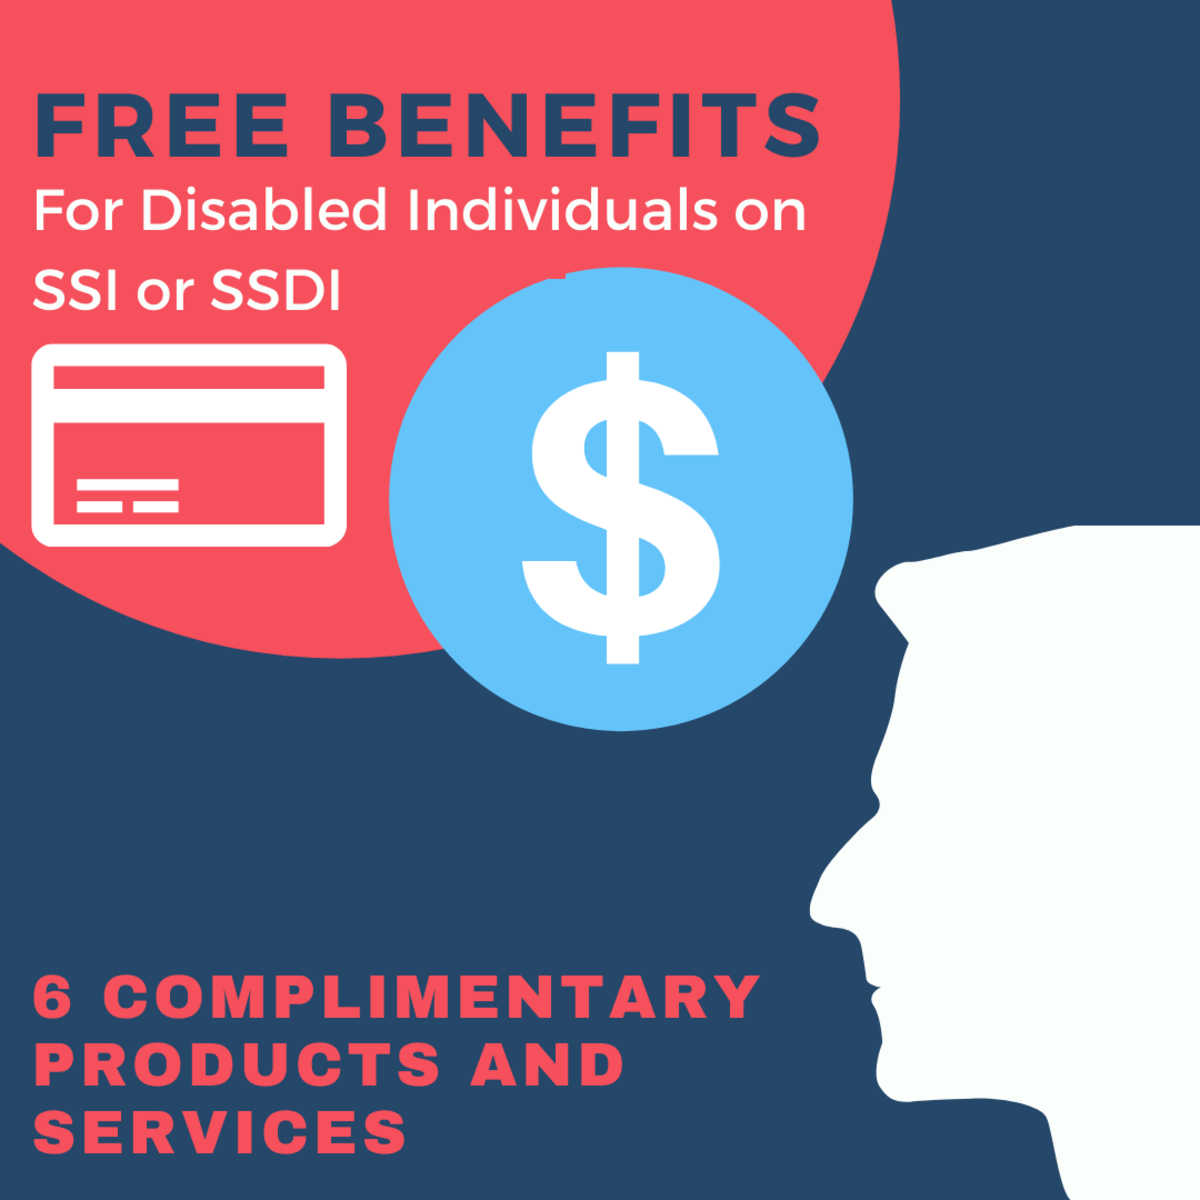 Did you know that if you are disabled and receive social security income, you might be eligible for a range of free products and services?